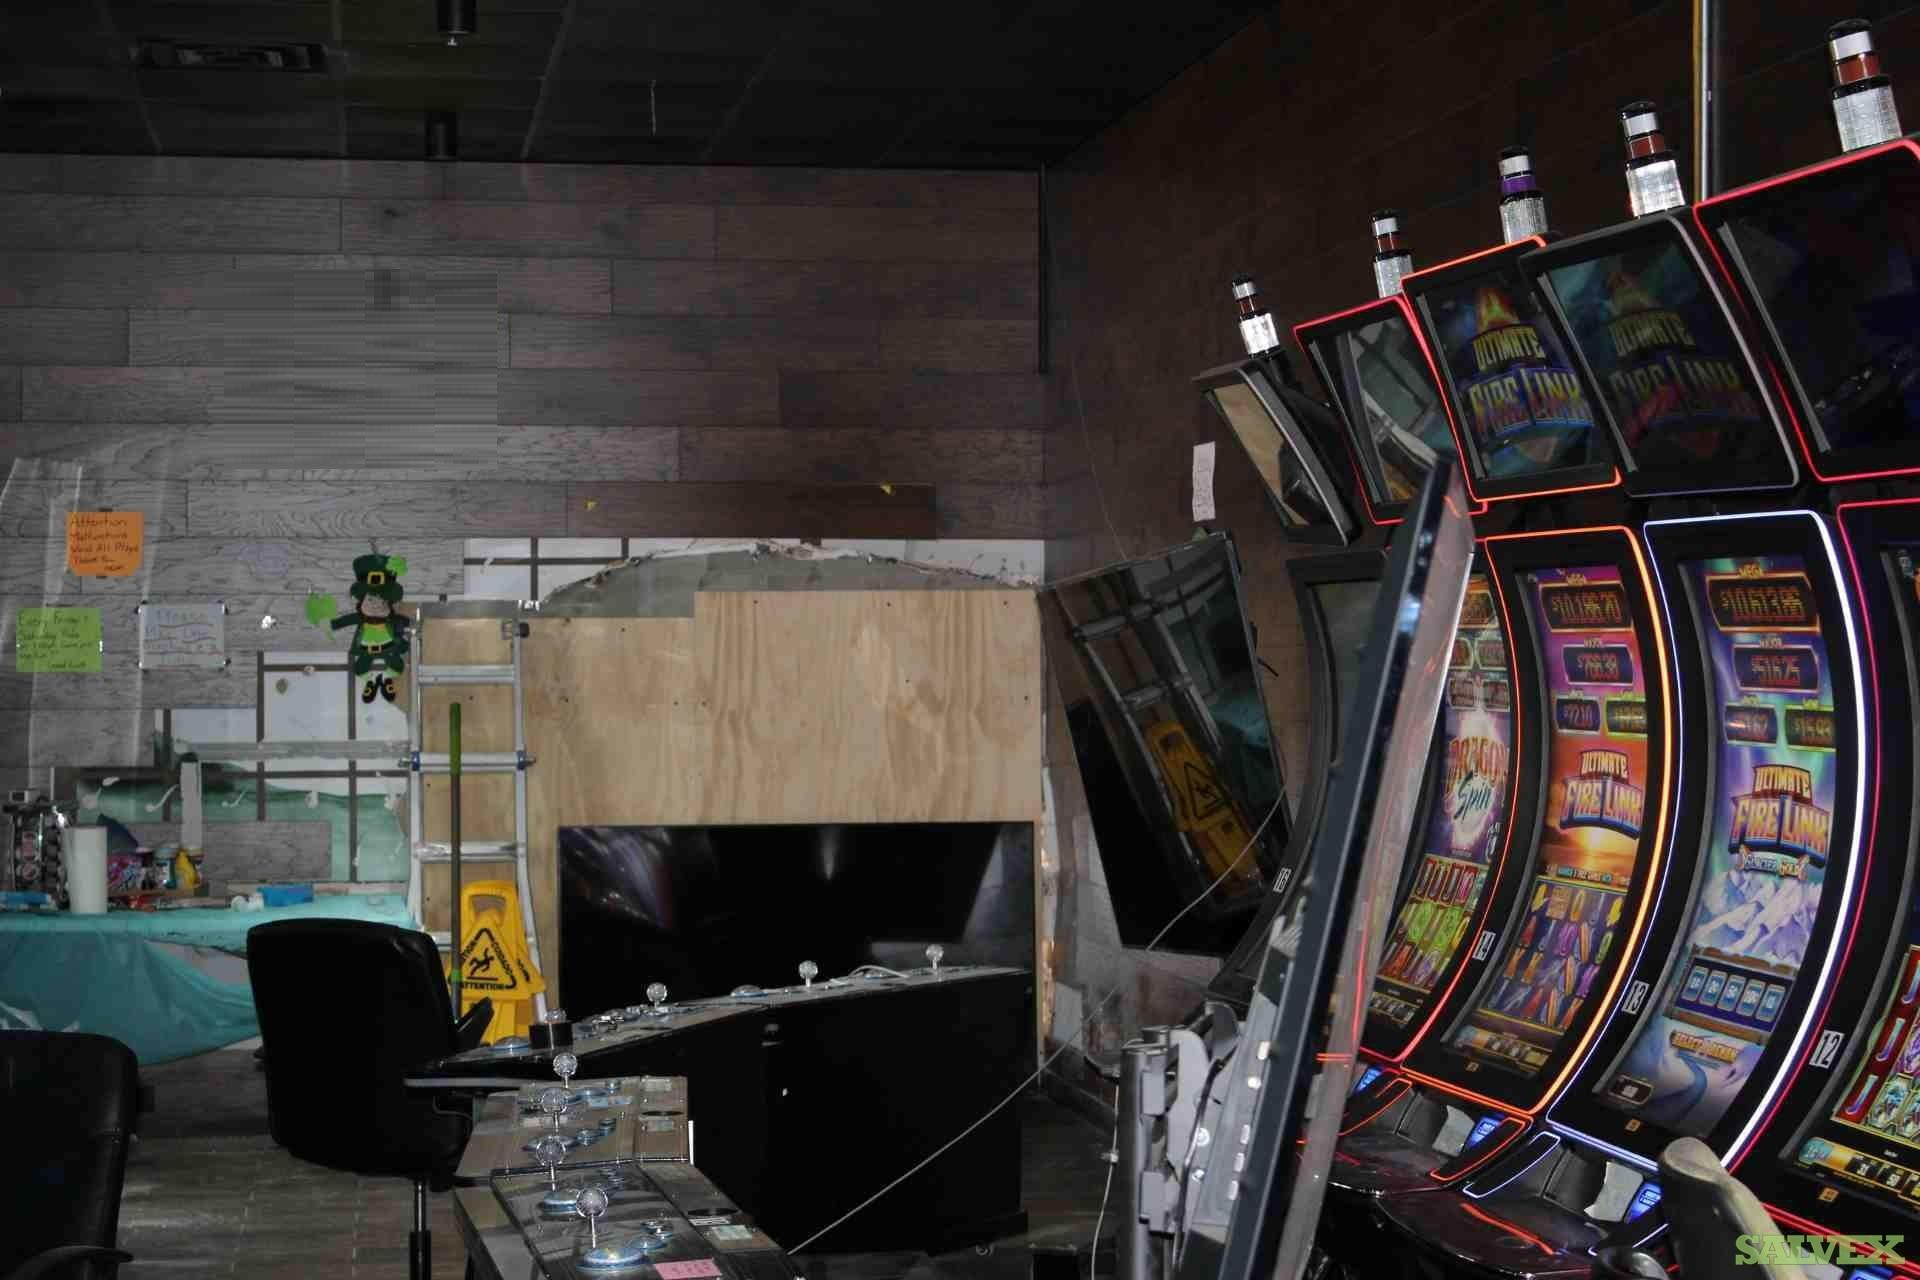 Casino Games: 3 Fishing and 3 Stand up - Damaged (6 Units) in FL